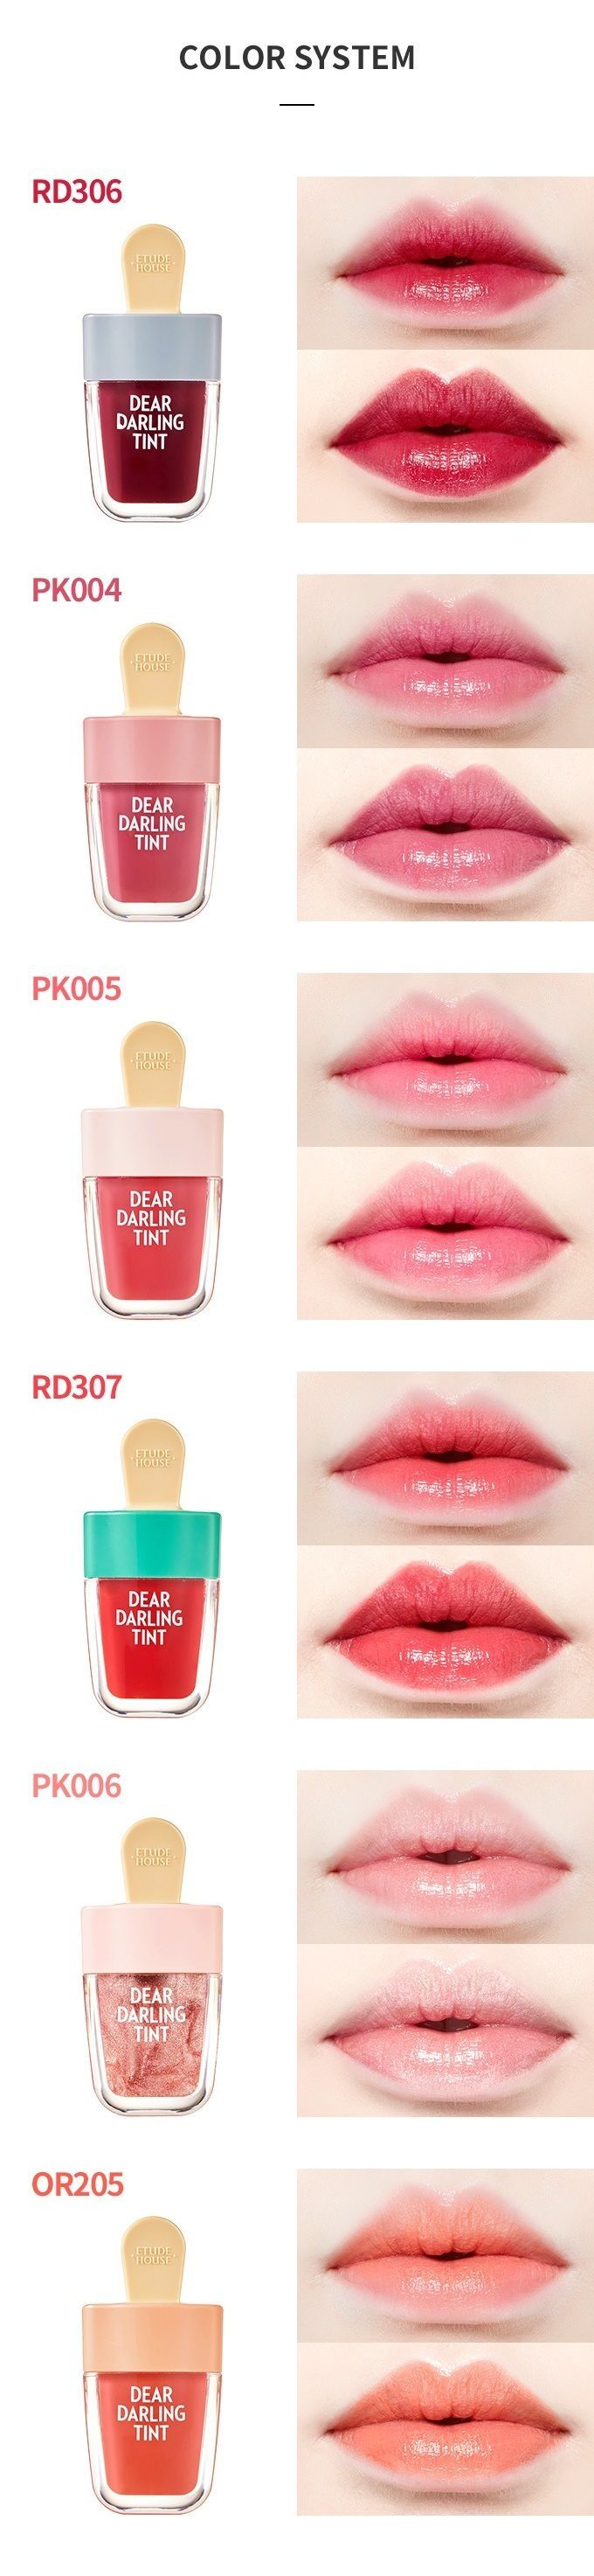 Etude House Dear Darling Tint- Peach Red, Red Bean Red & Watermelon Red- (YesStyle, Ebay)